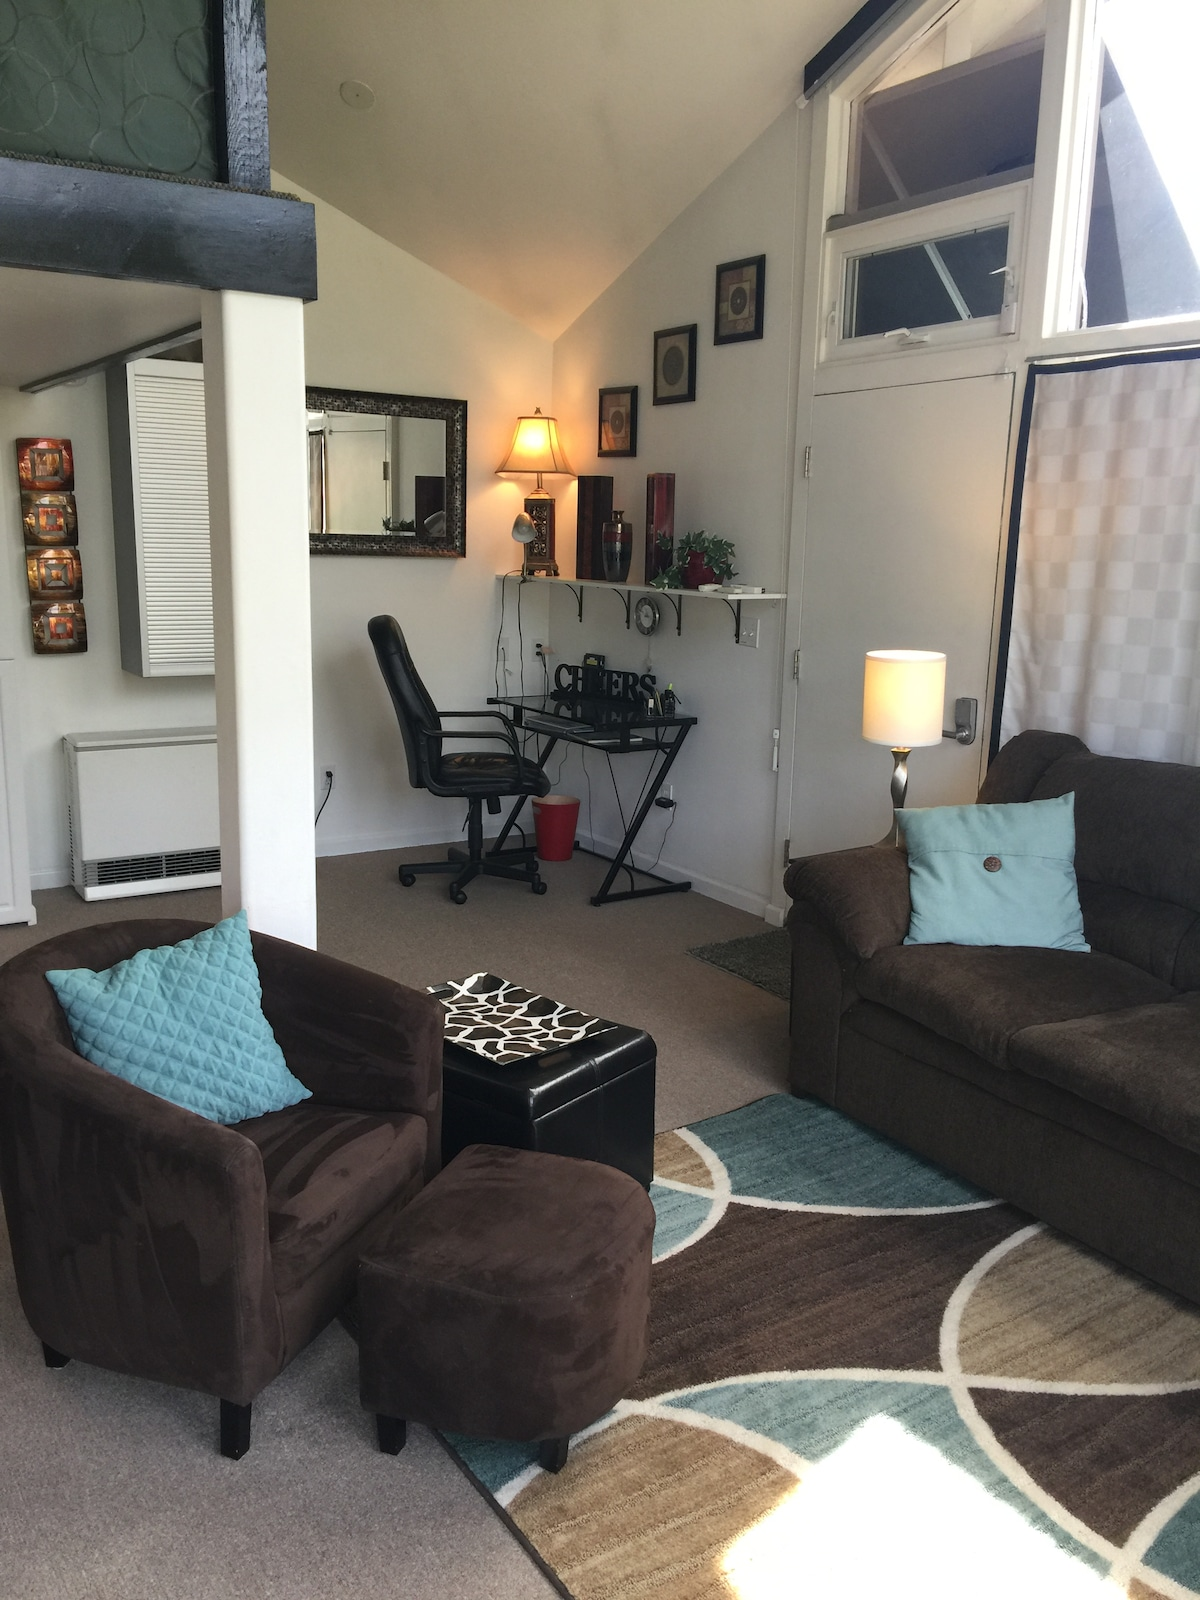 Sonora Downtown Creekside Cottage   Houses For Rent In Sonora, California,  United States